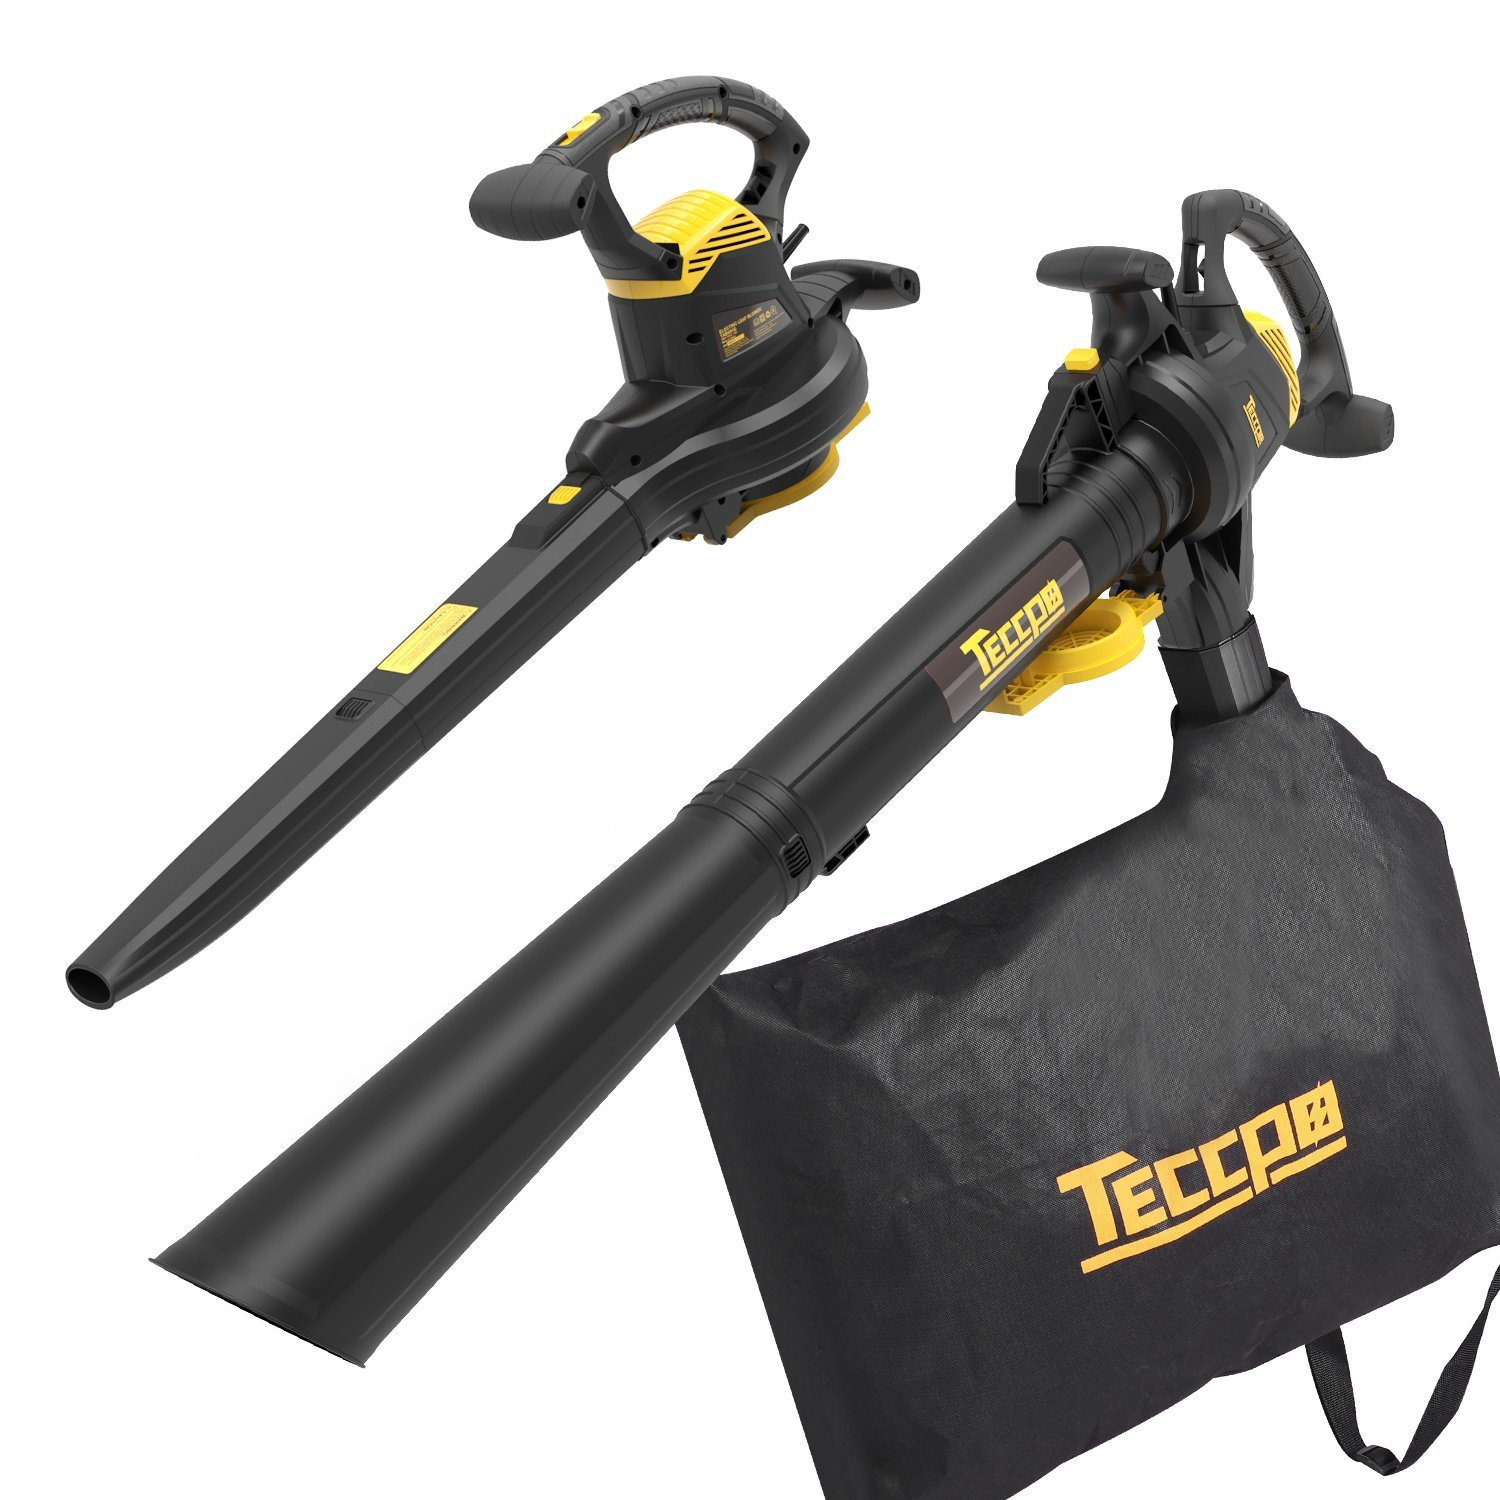 Leaf Blower Vacuum, TECCPO TABV01G 12-Amp 250MPH 410CFM 3 in 1 corded electric Two-Speed Sweeper/Vac/Mulcher, Plastic Impeller Metal Blade, Ideal for Lawn and Garden by TECCPO (Image #1)